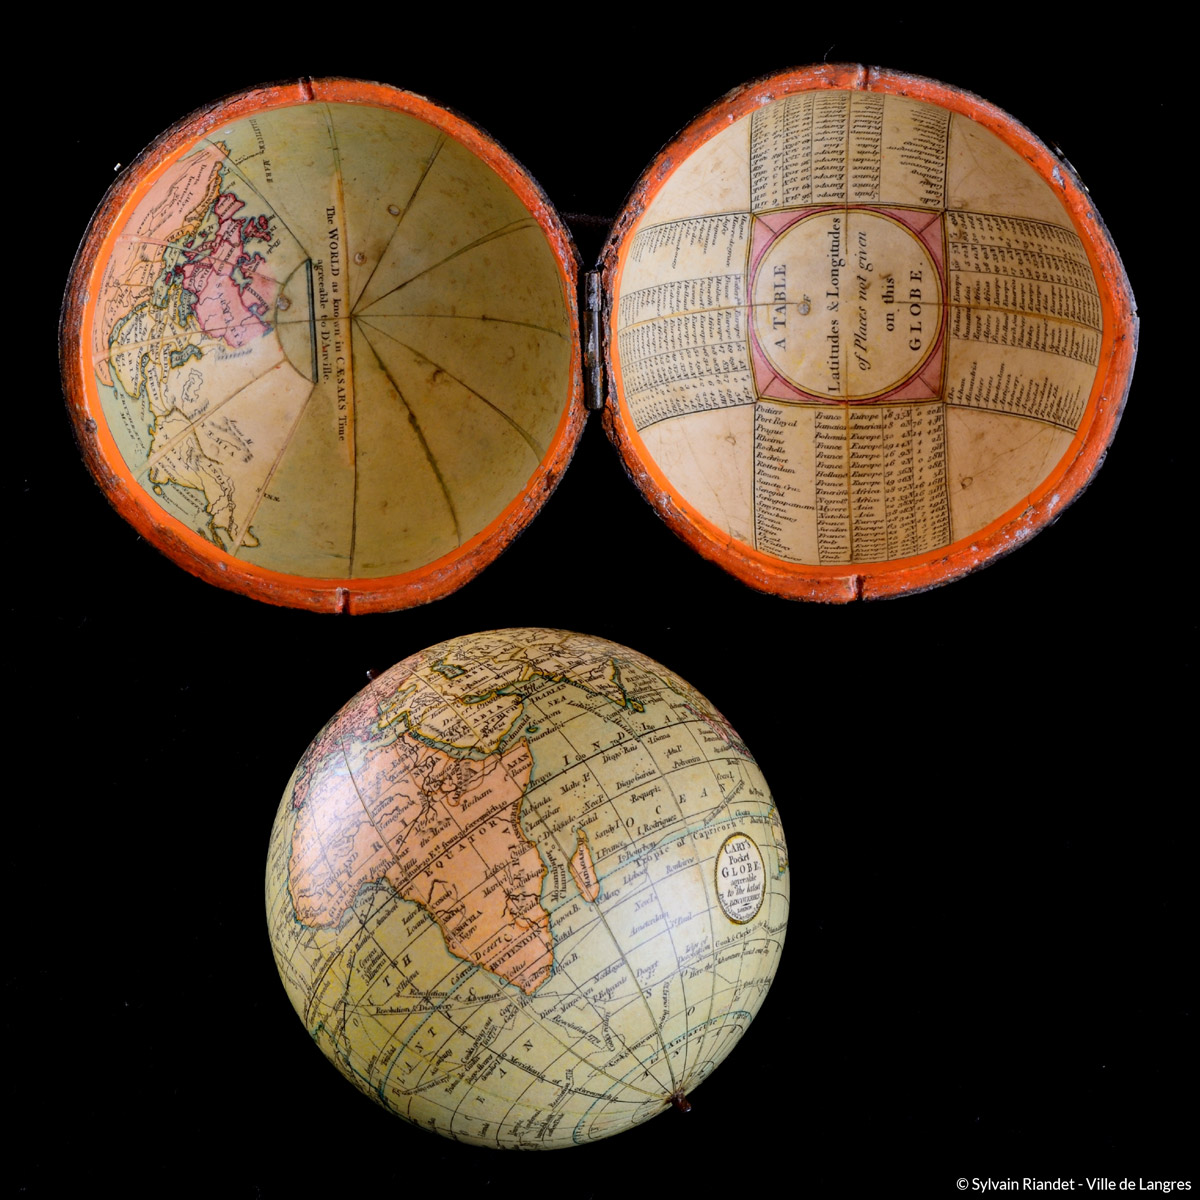 globe de poche mus es de langres maison des lumi res denis diderot mus e d 39 art et d 39 histoire. Black Bedroom Furniture Sets. Home Design Ideas